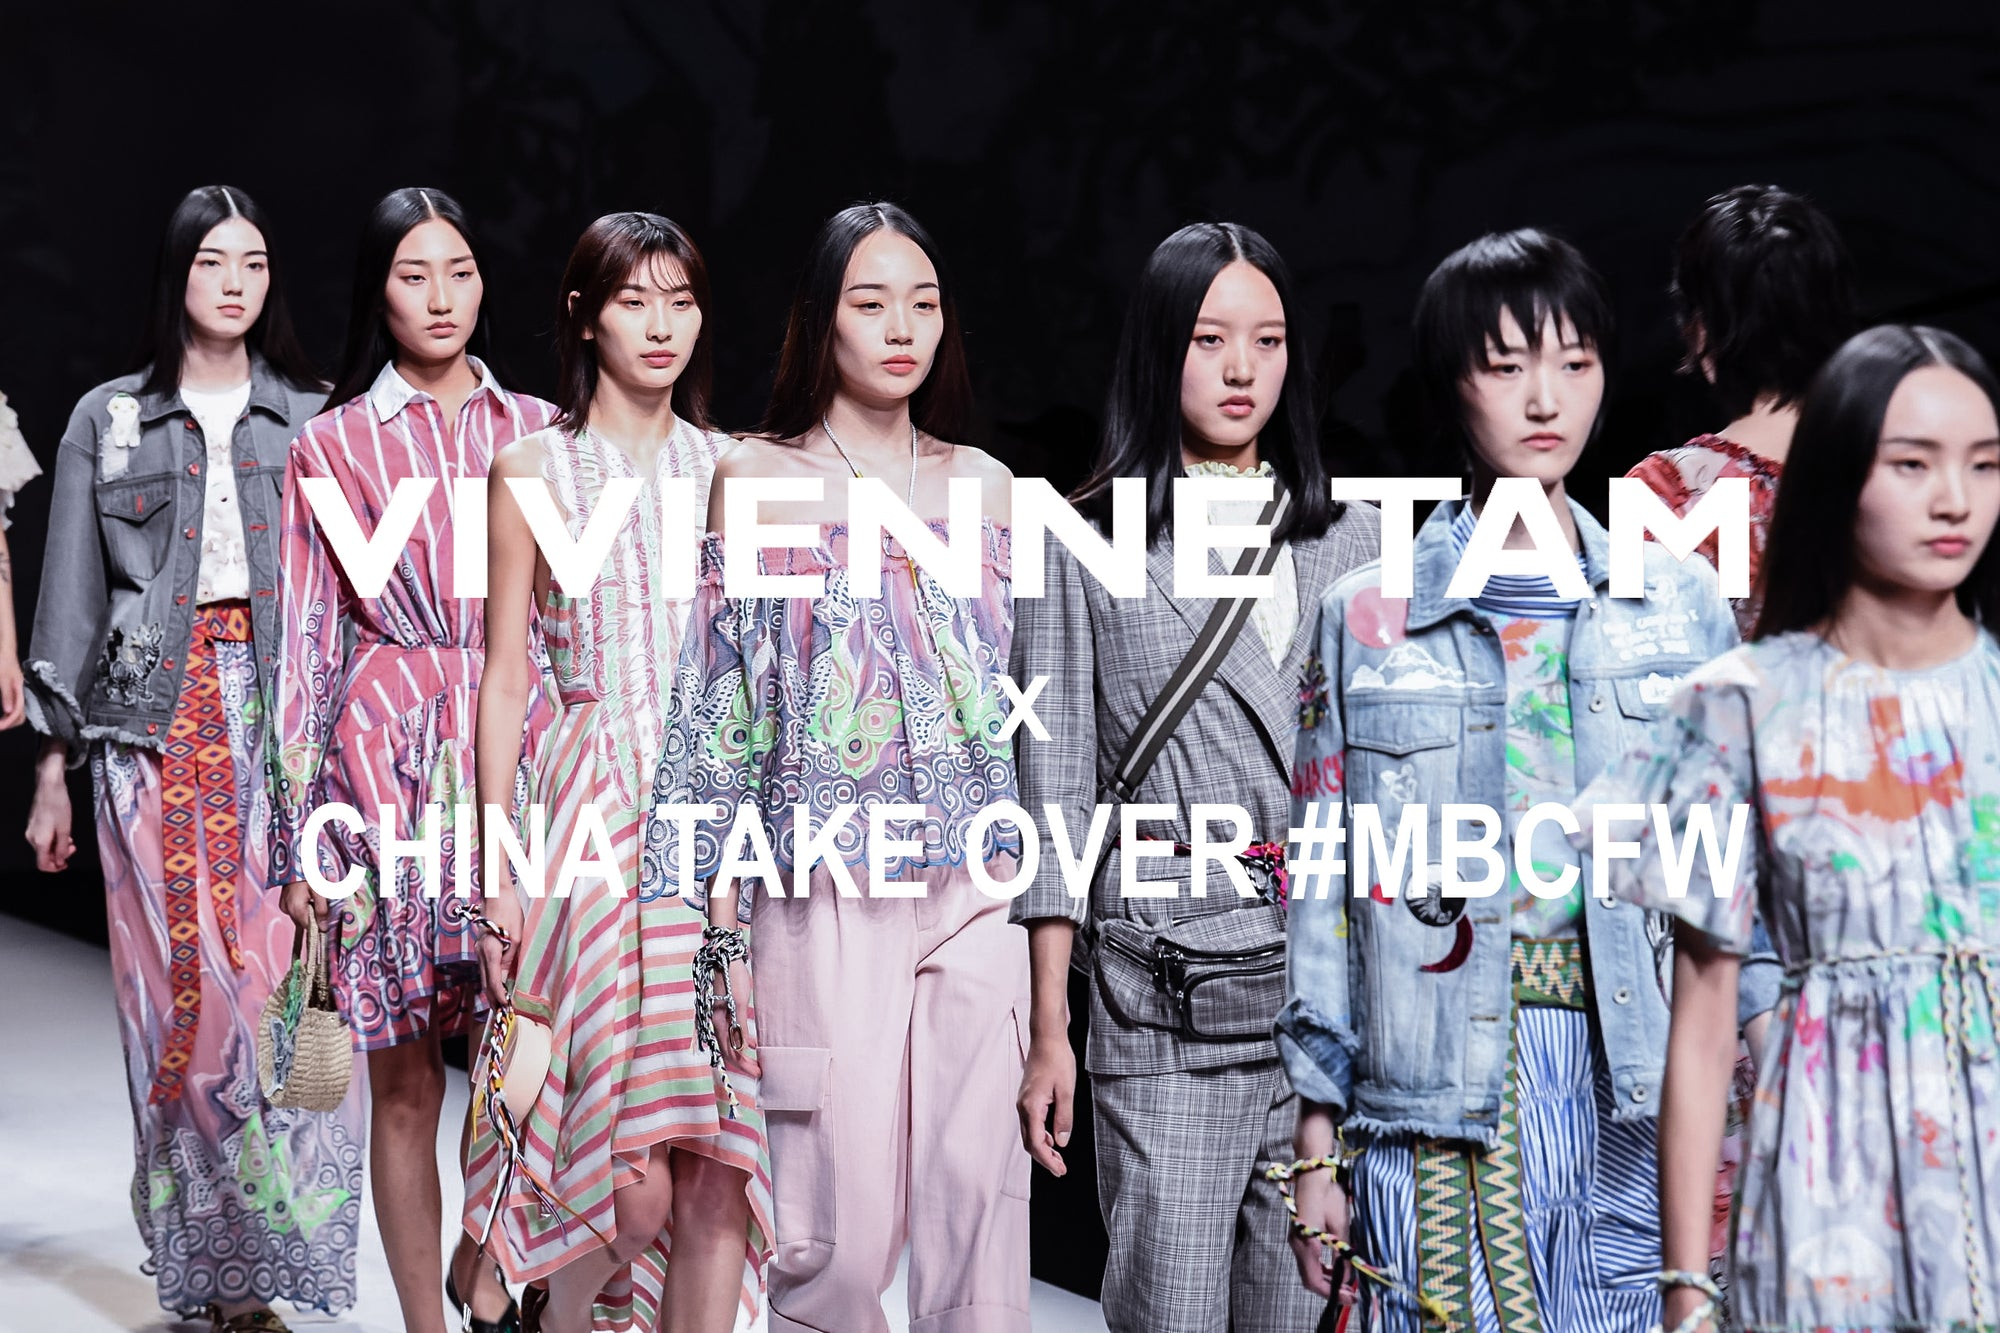 Vivienne Tam x China Take Over #MBCFW